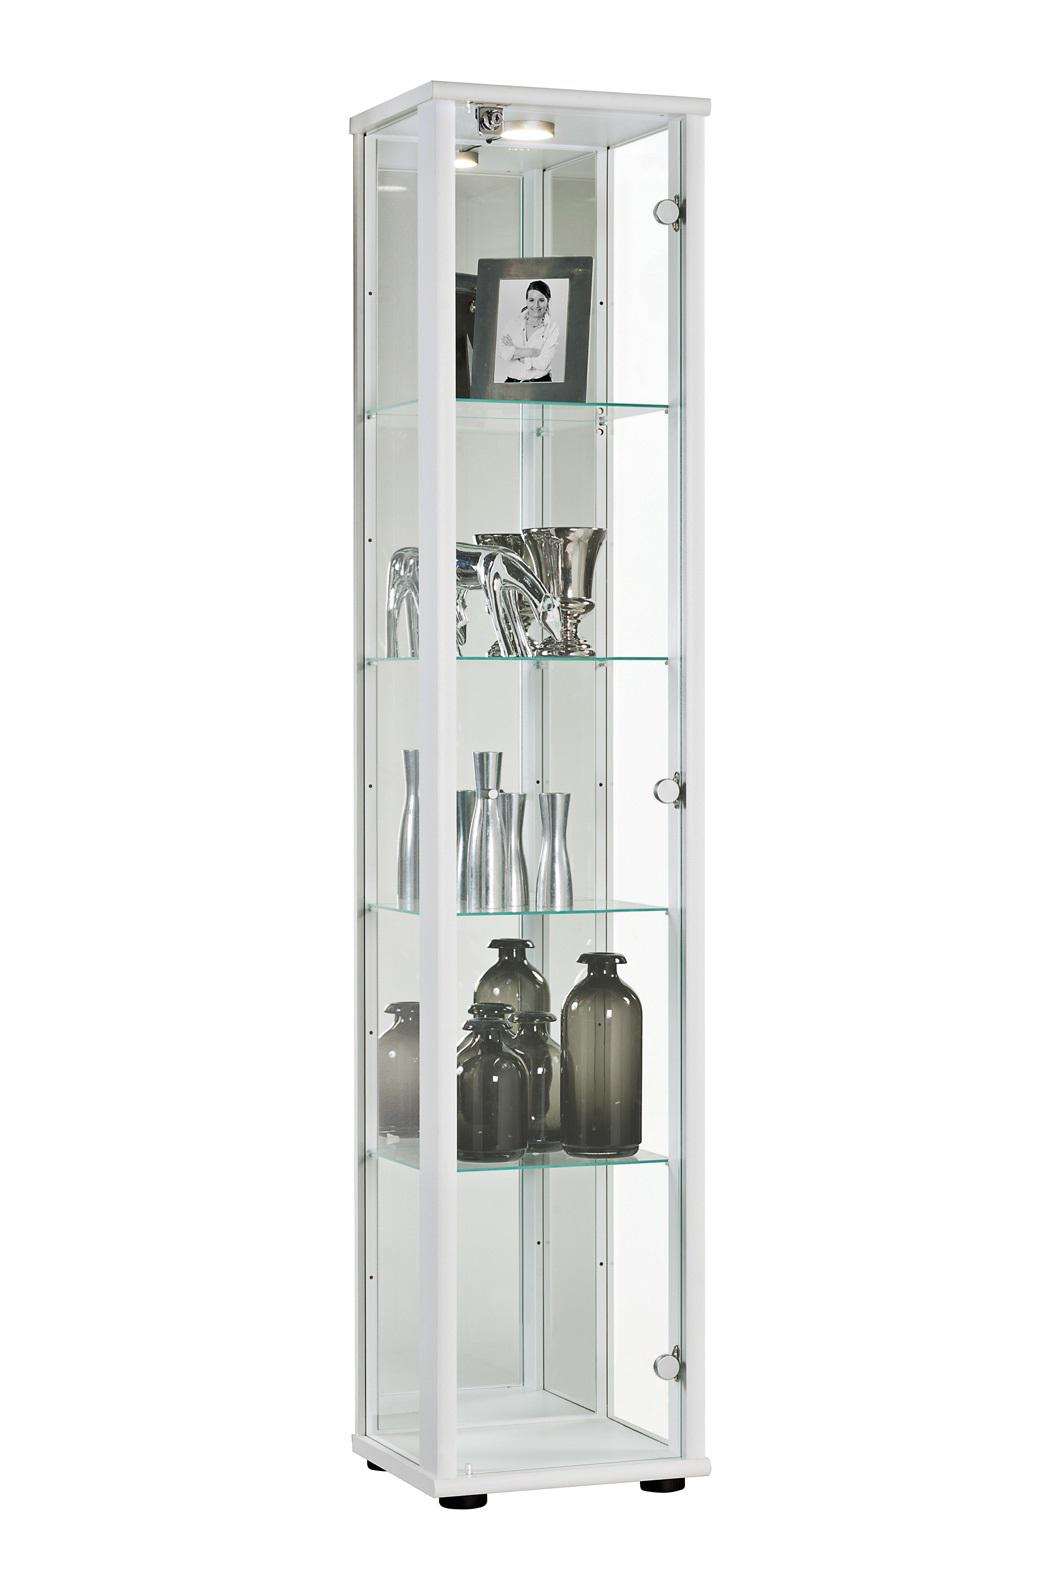 glasvitrine sammelvitrine standvitrine vitrine led. Black Bedroom Furniture Sets. Home Design Ideas